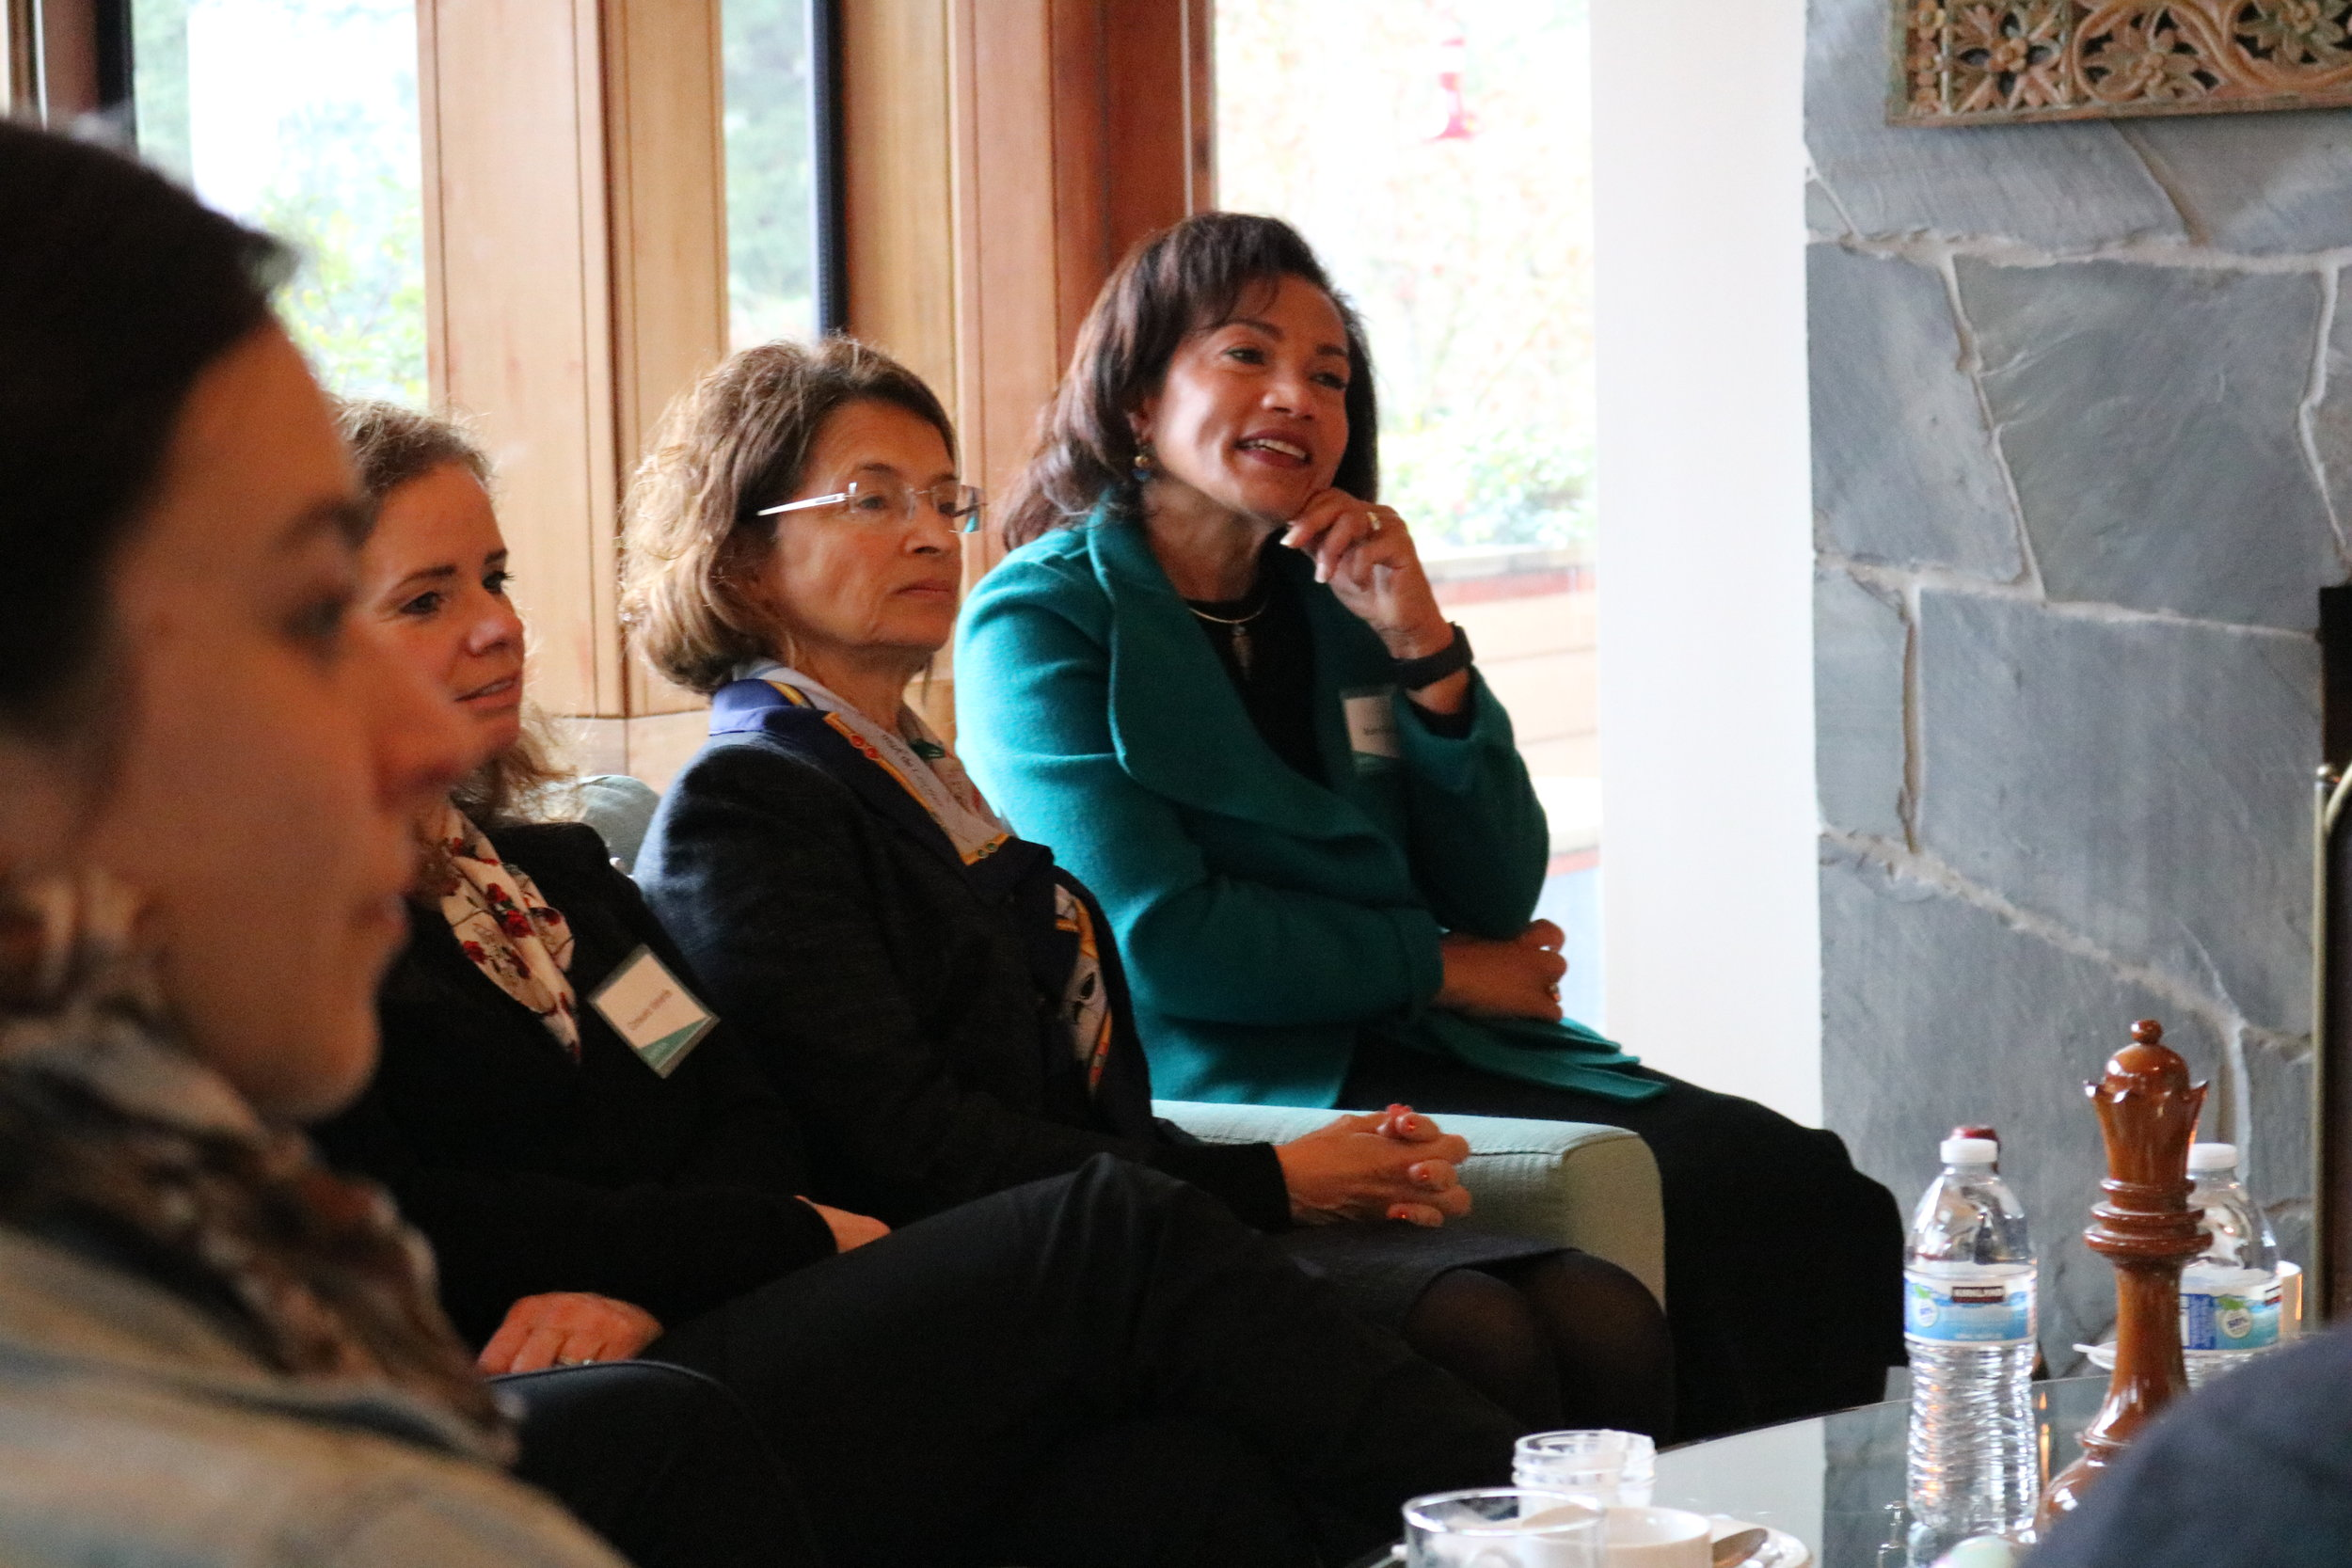 KAUFFMAN FELLOW'S WOMEN'S BREAKFAST - March 1, 2018Woodside, CA